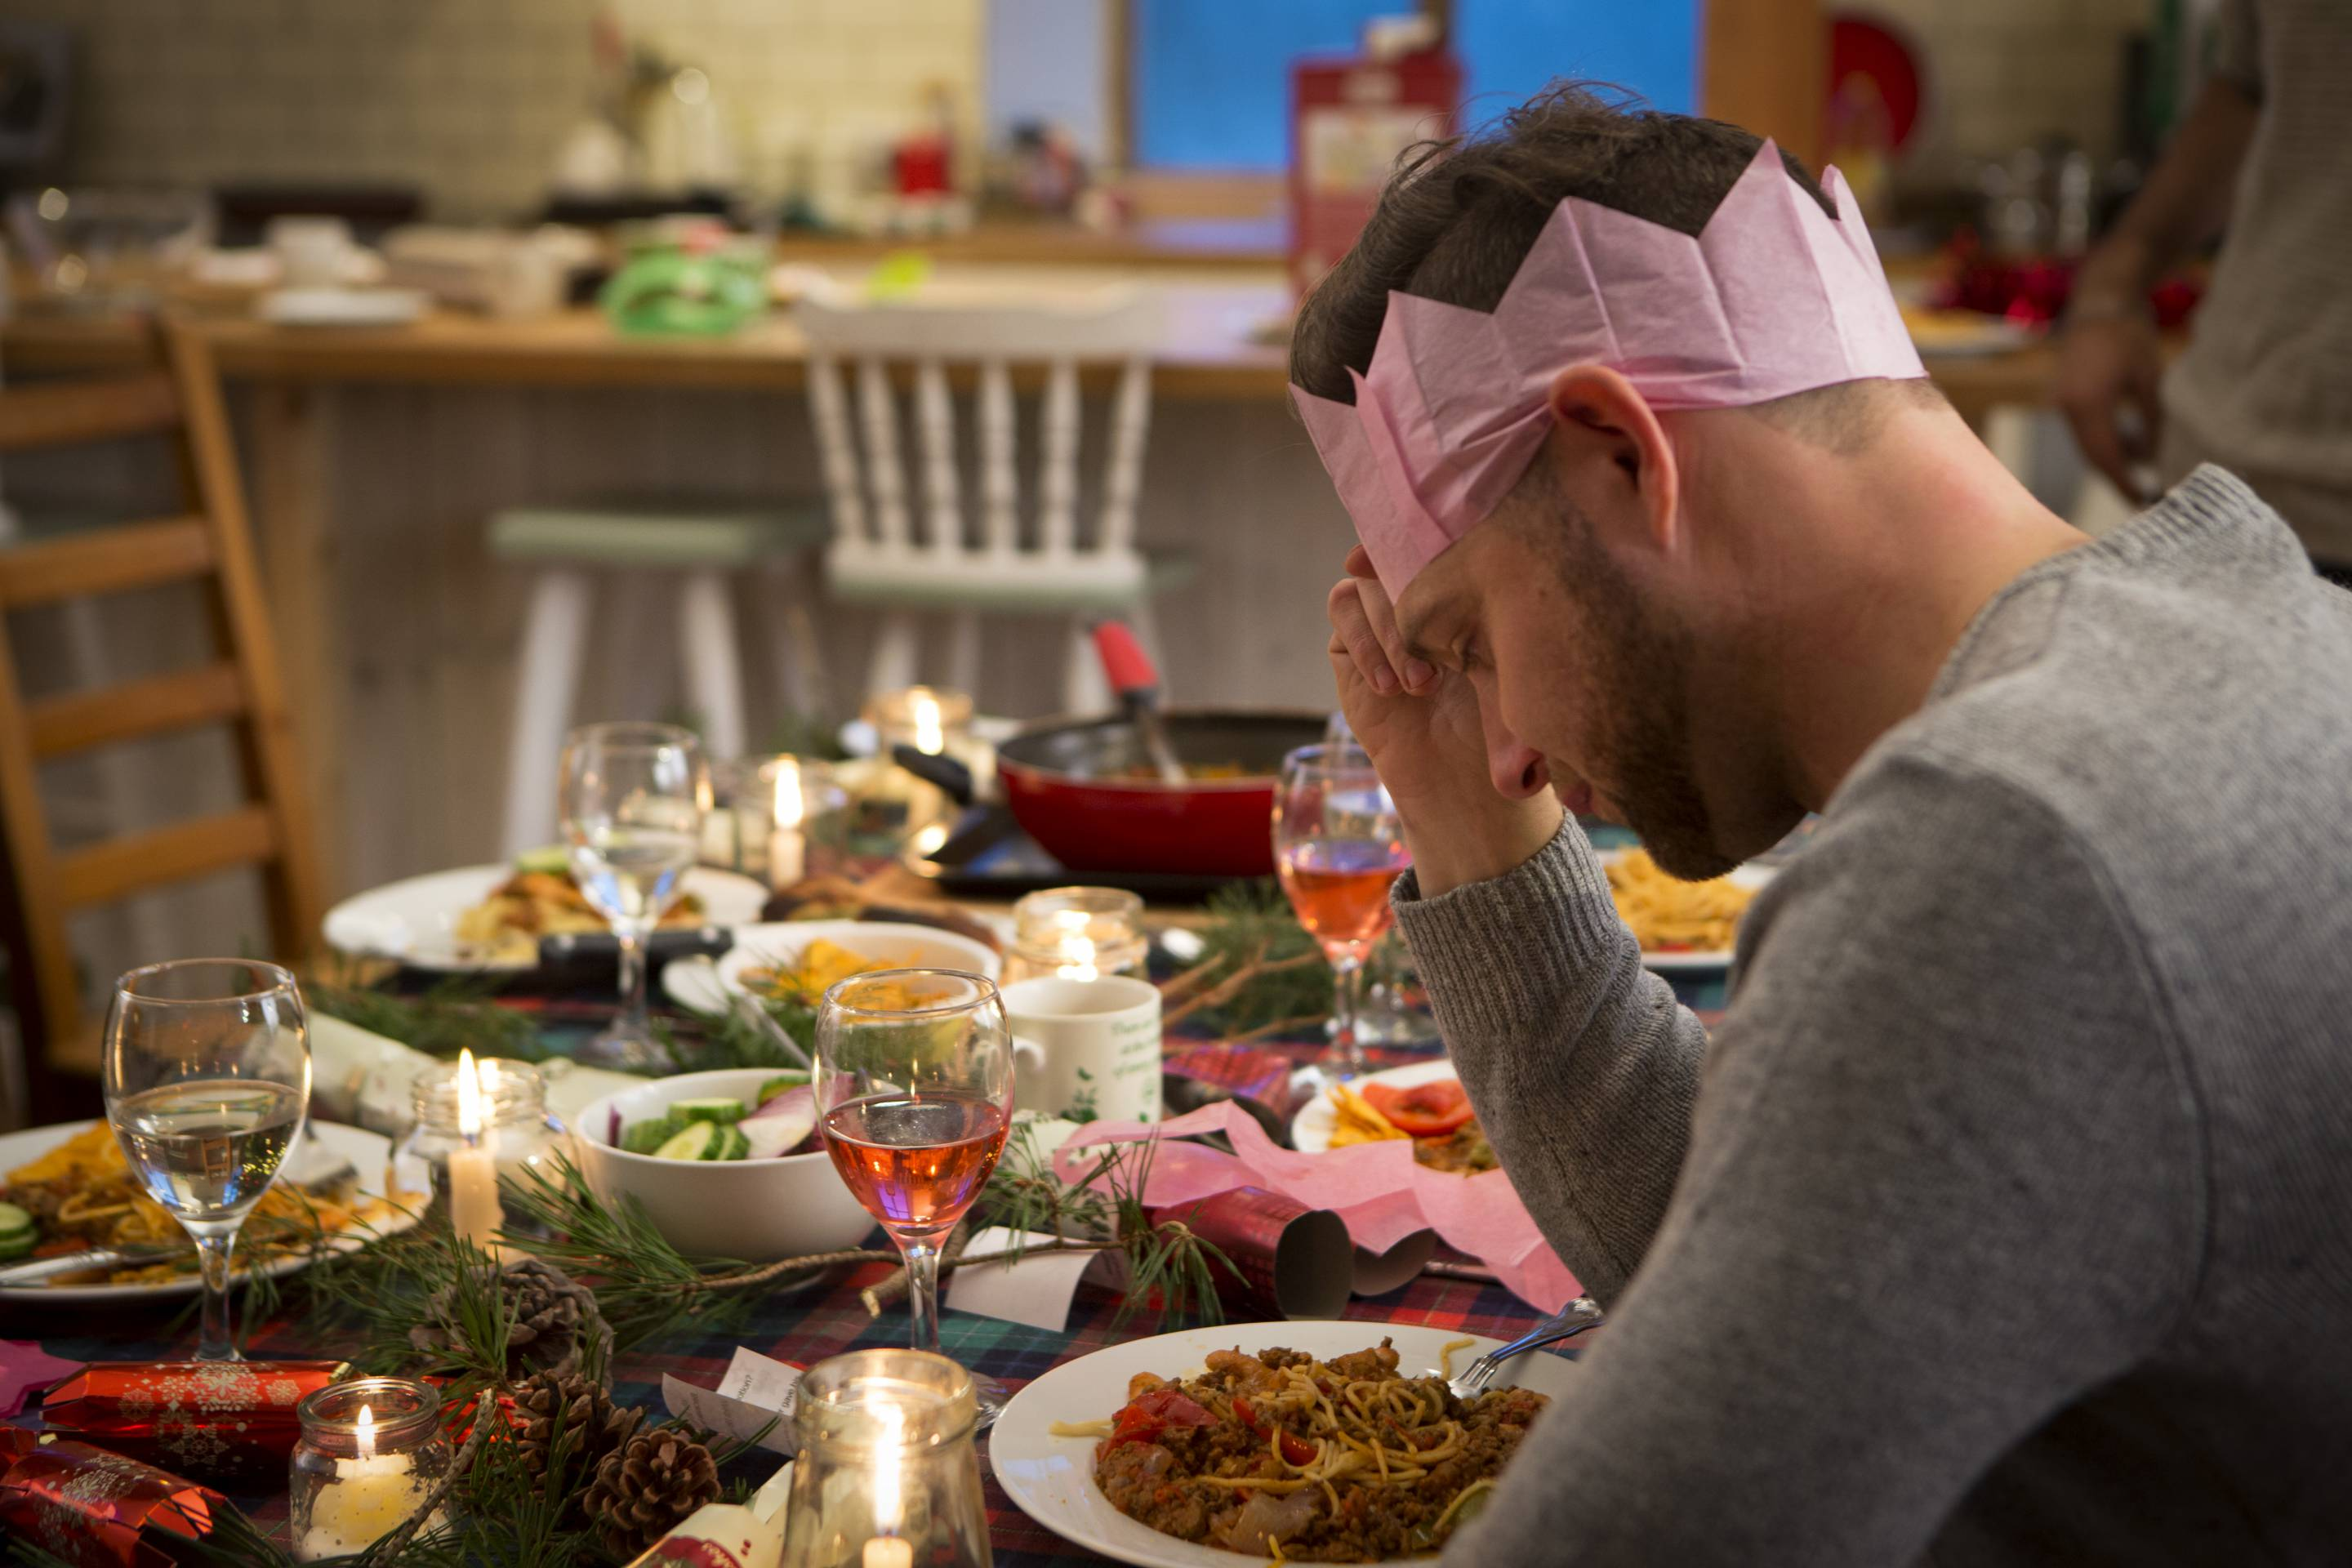 A man sits at a dinner table at Christmas looking sad as his head is lowered and resting on his hand. He sits with a pink hat on, alone with a plate of food in front of him.